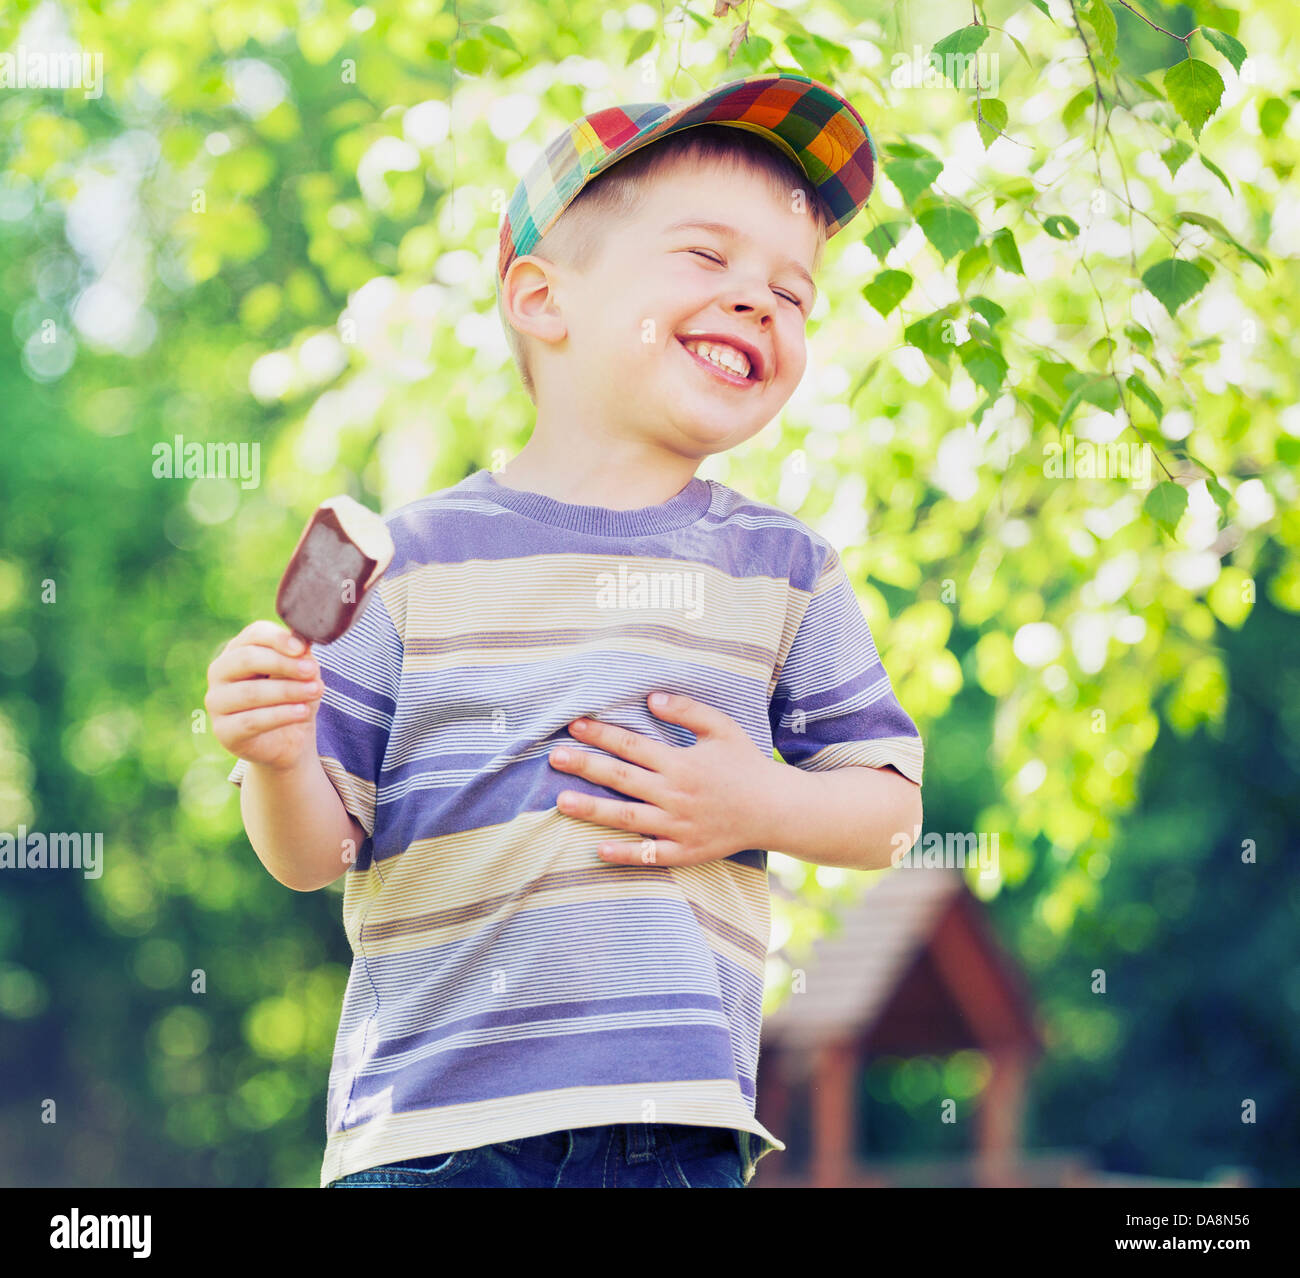 Contented small kid eating an ice cream - Stock Image